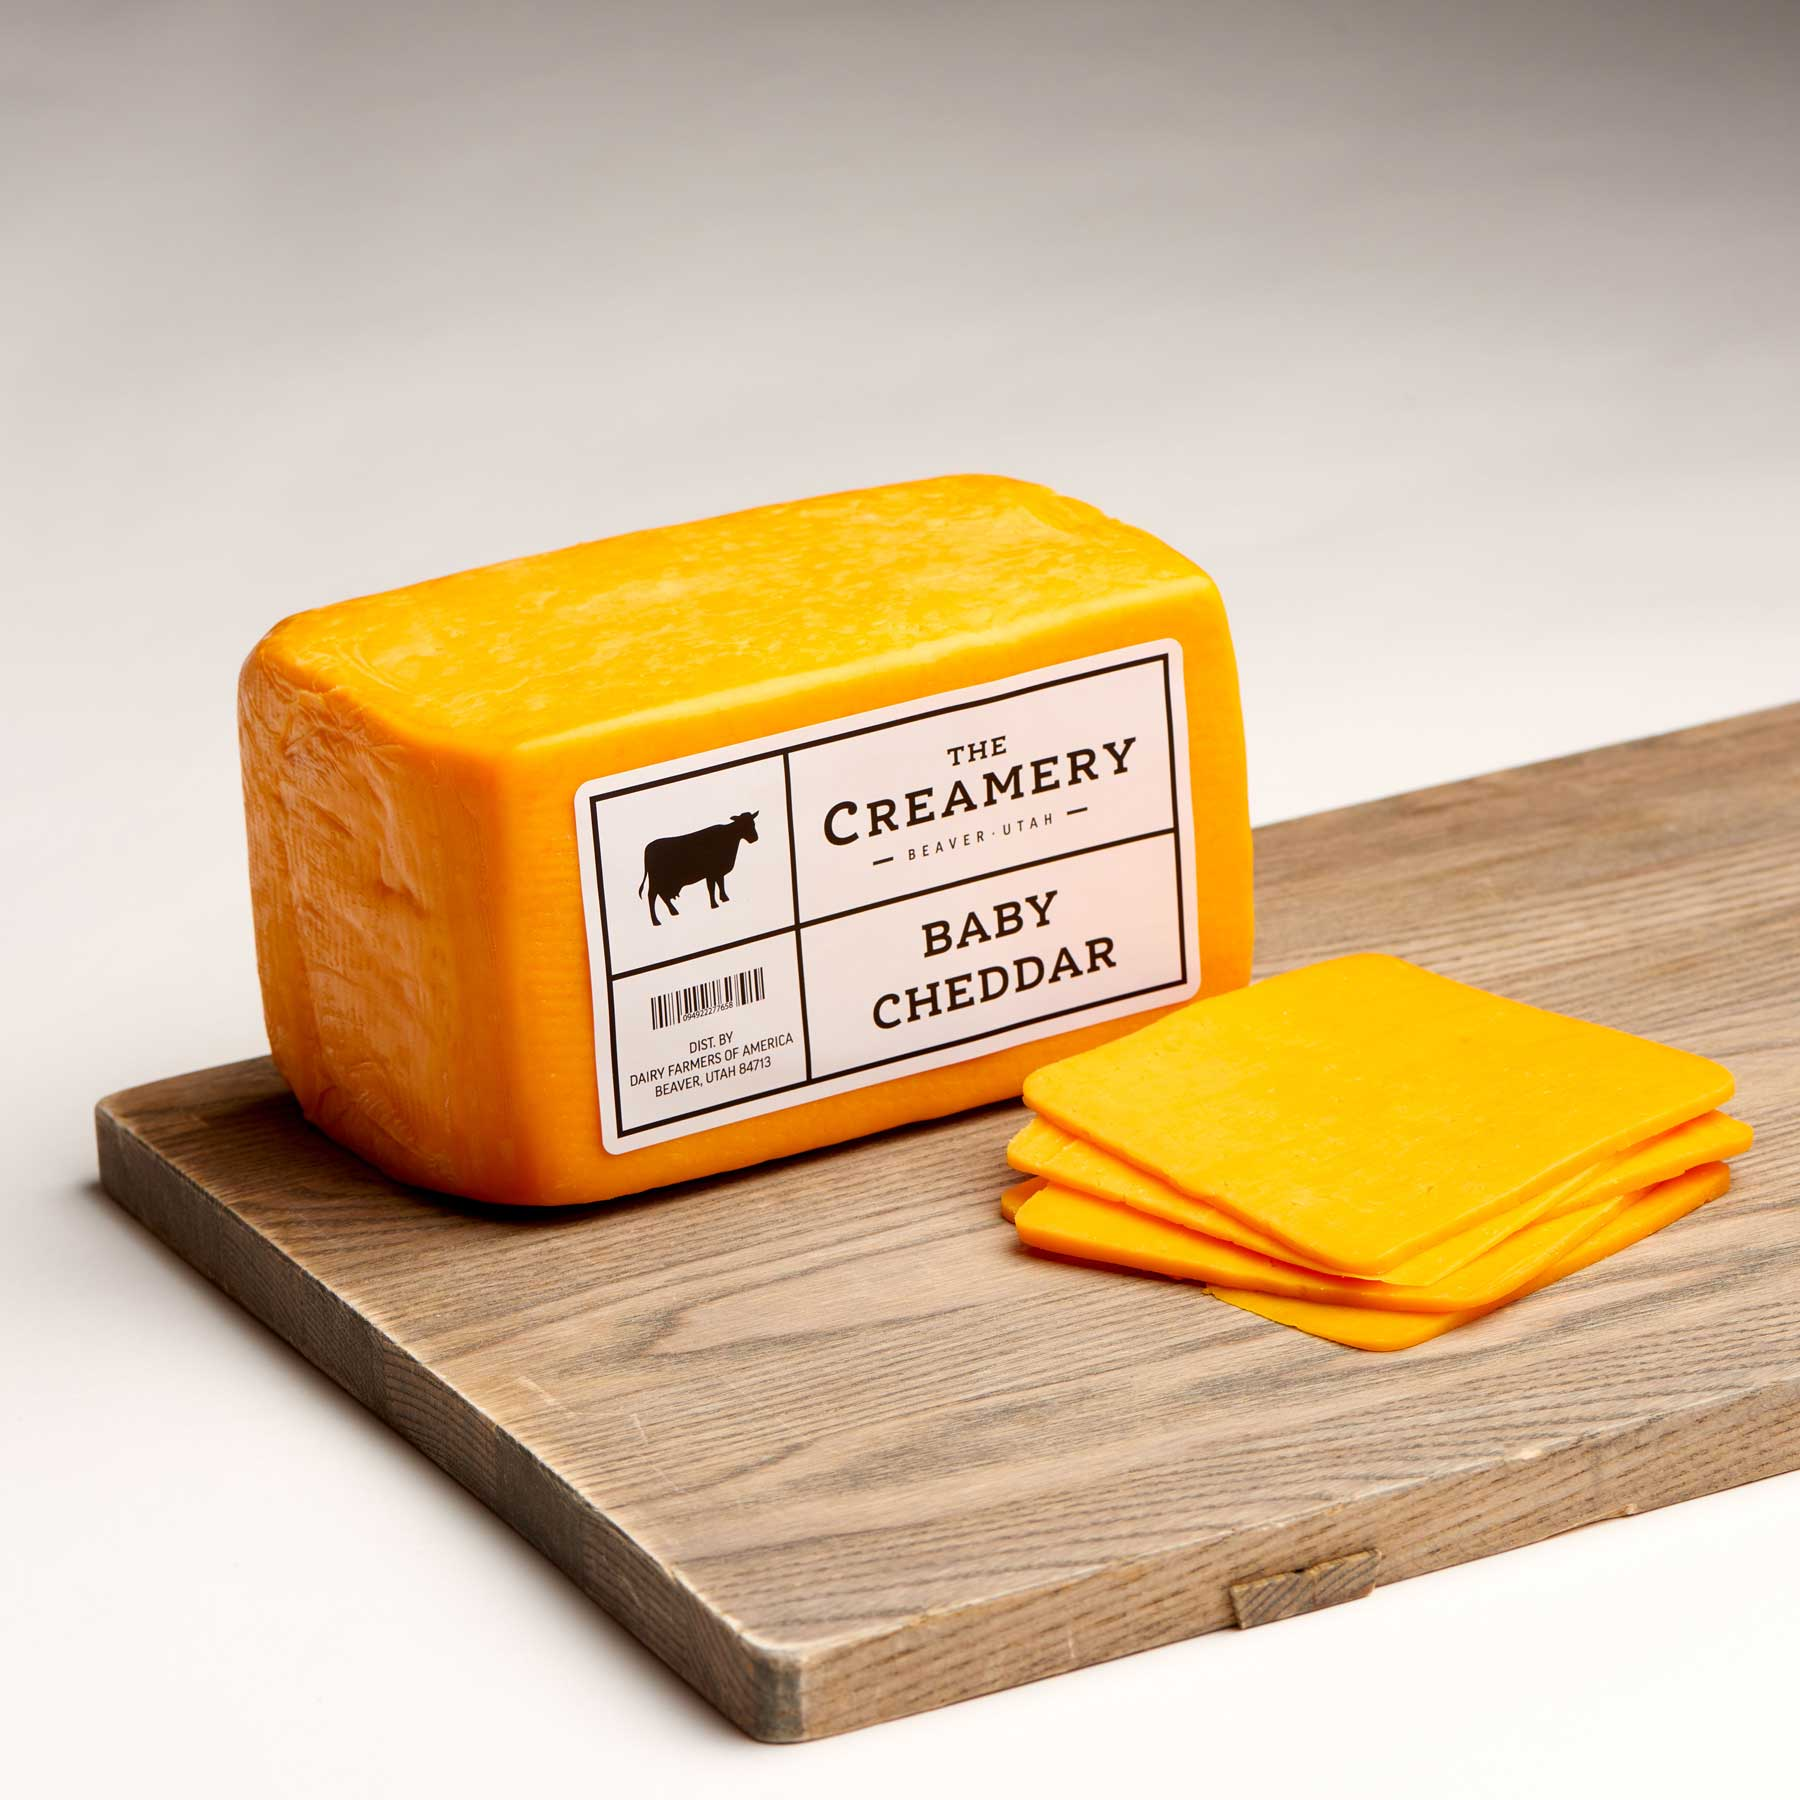 Image of Baby Cheddar 2.5 pound brick